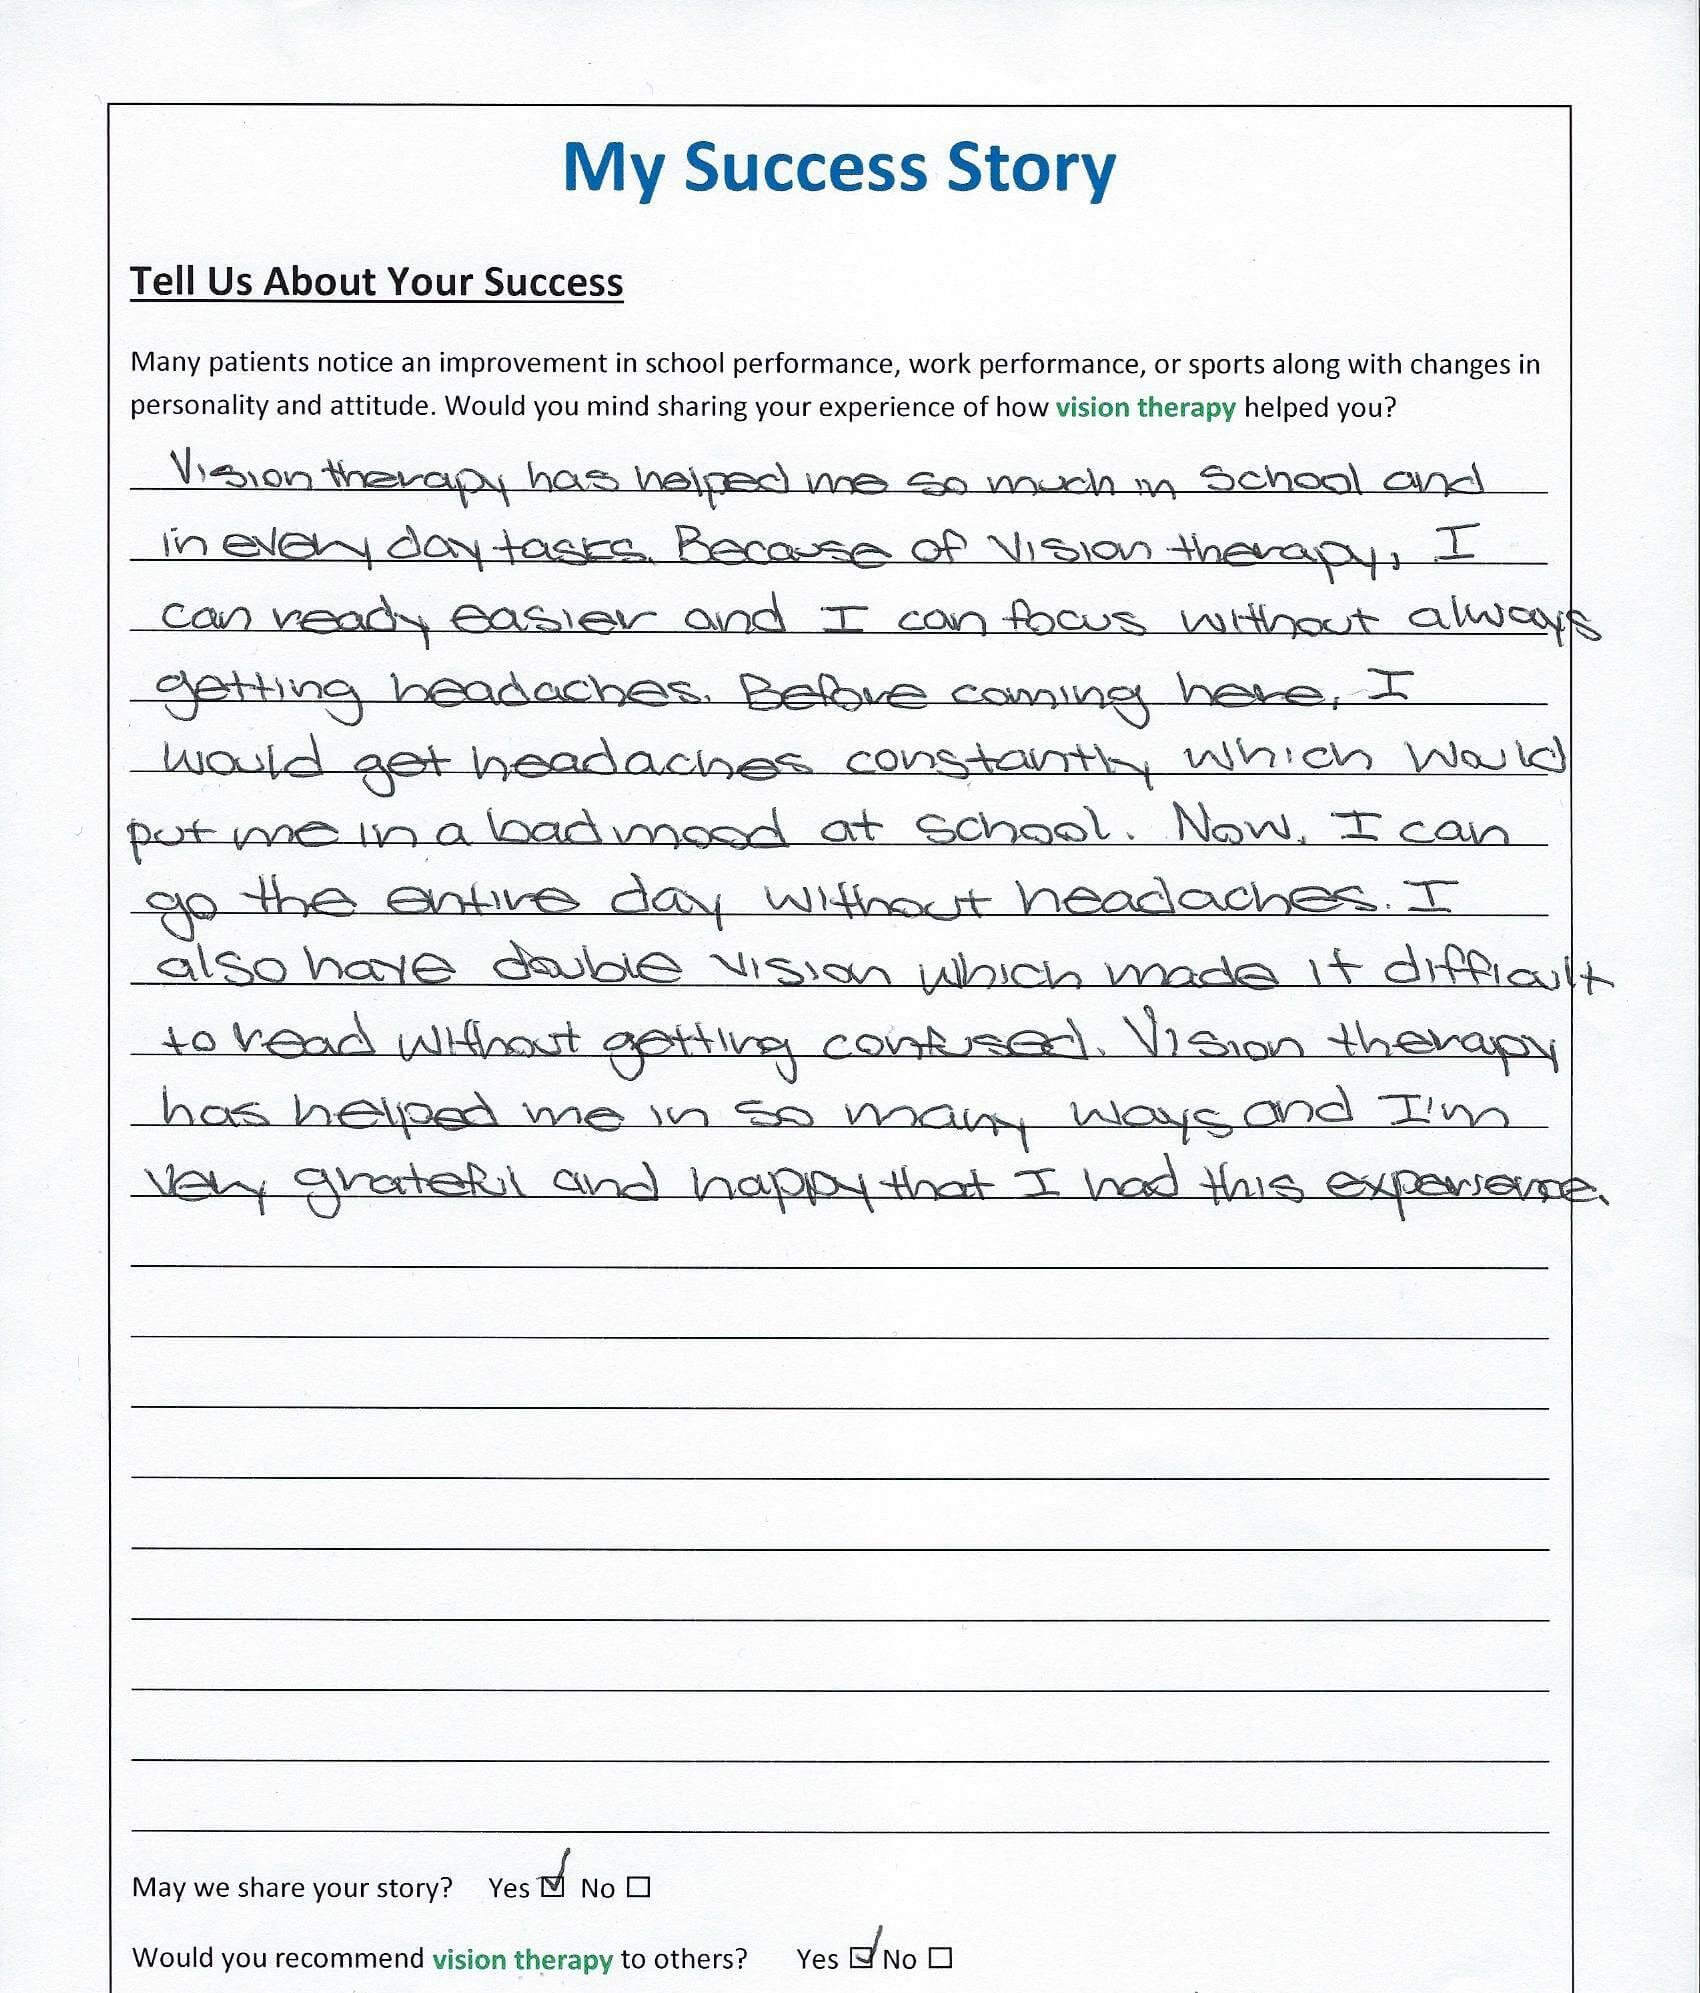 My Success Story Vision Therapy 05.06.19 edit